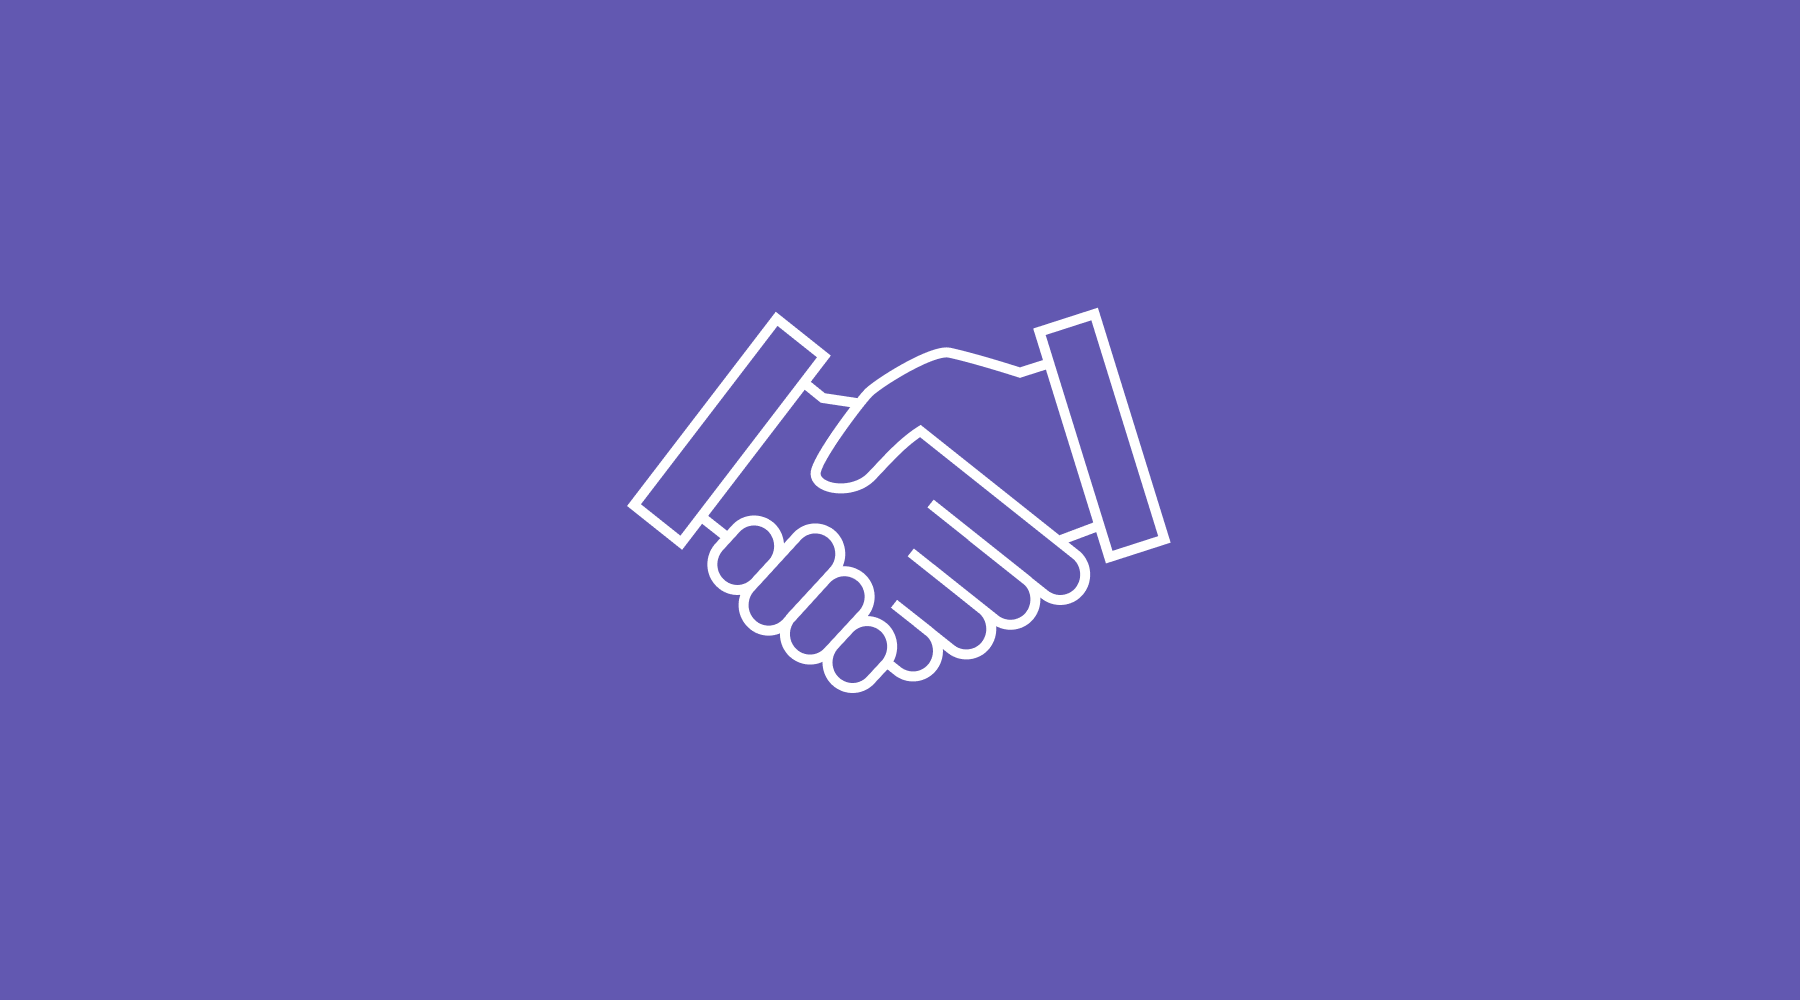 A pictogram of a handshake on a purple background